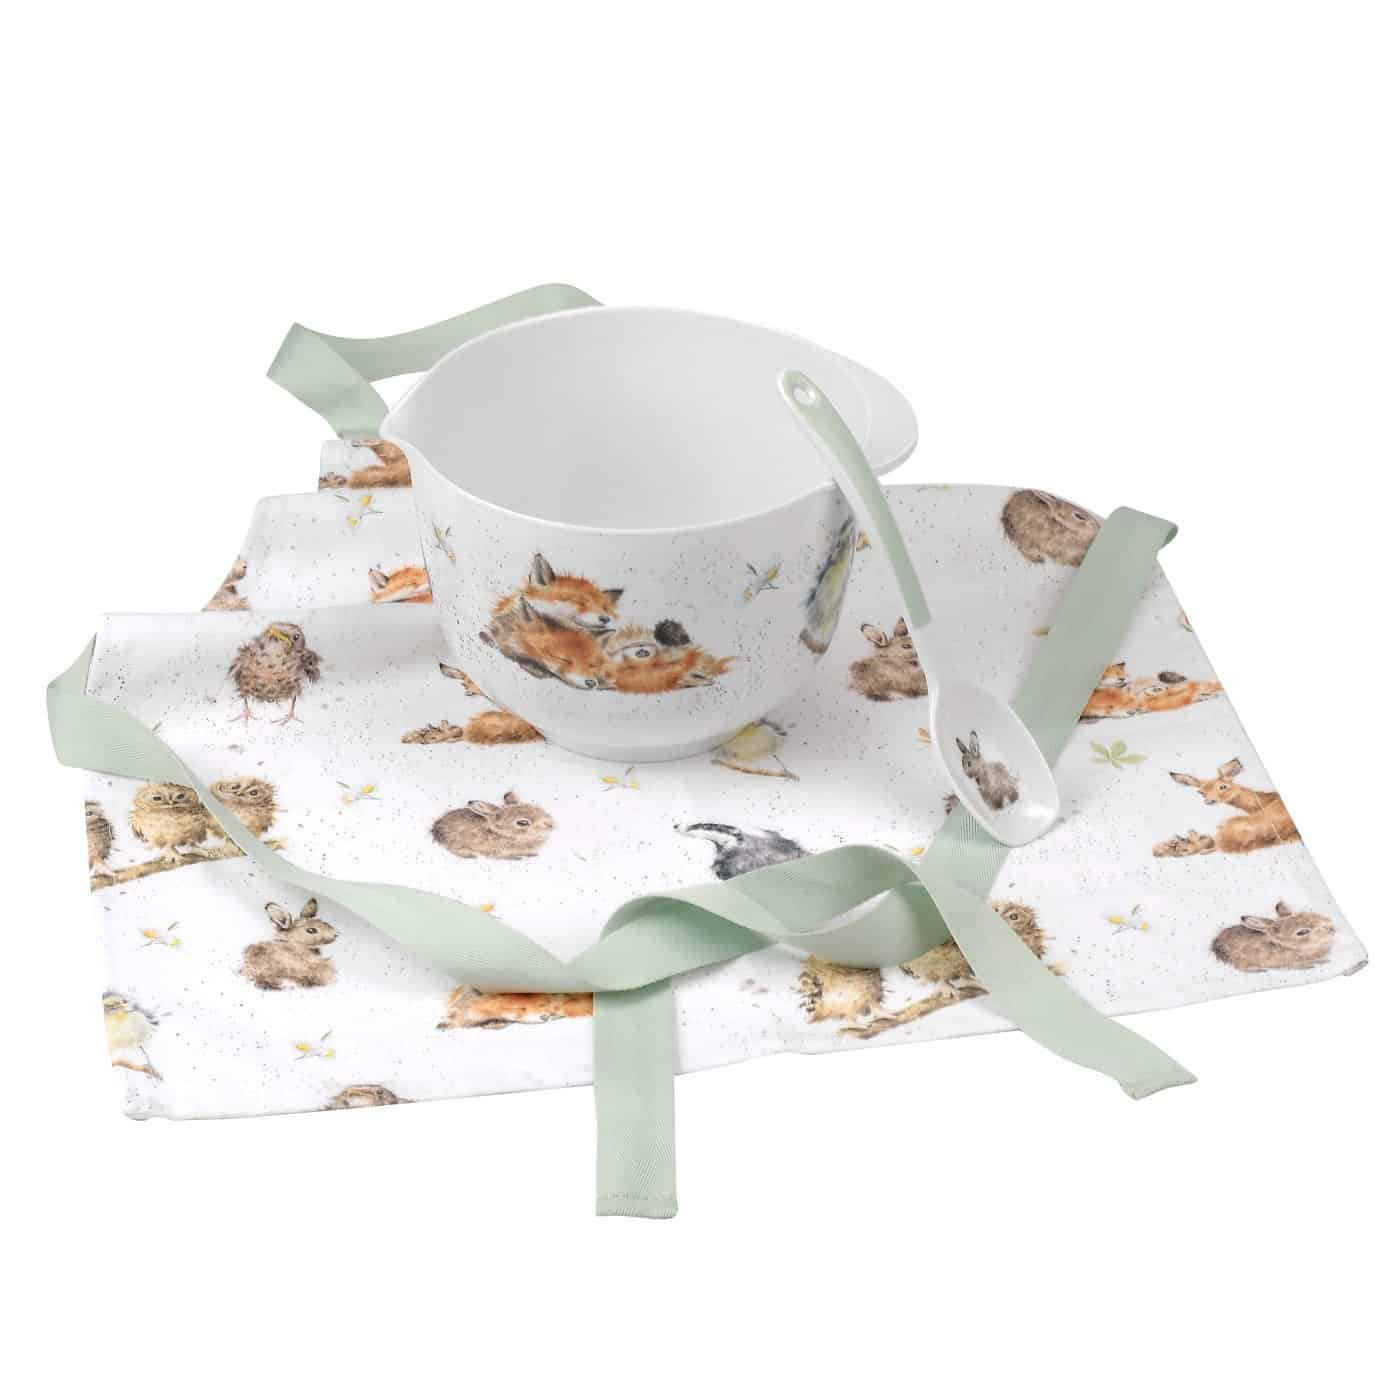 Wrendale Children's Baking Set